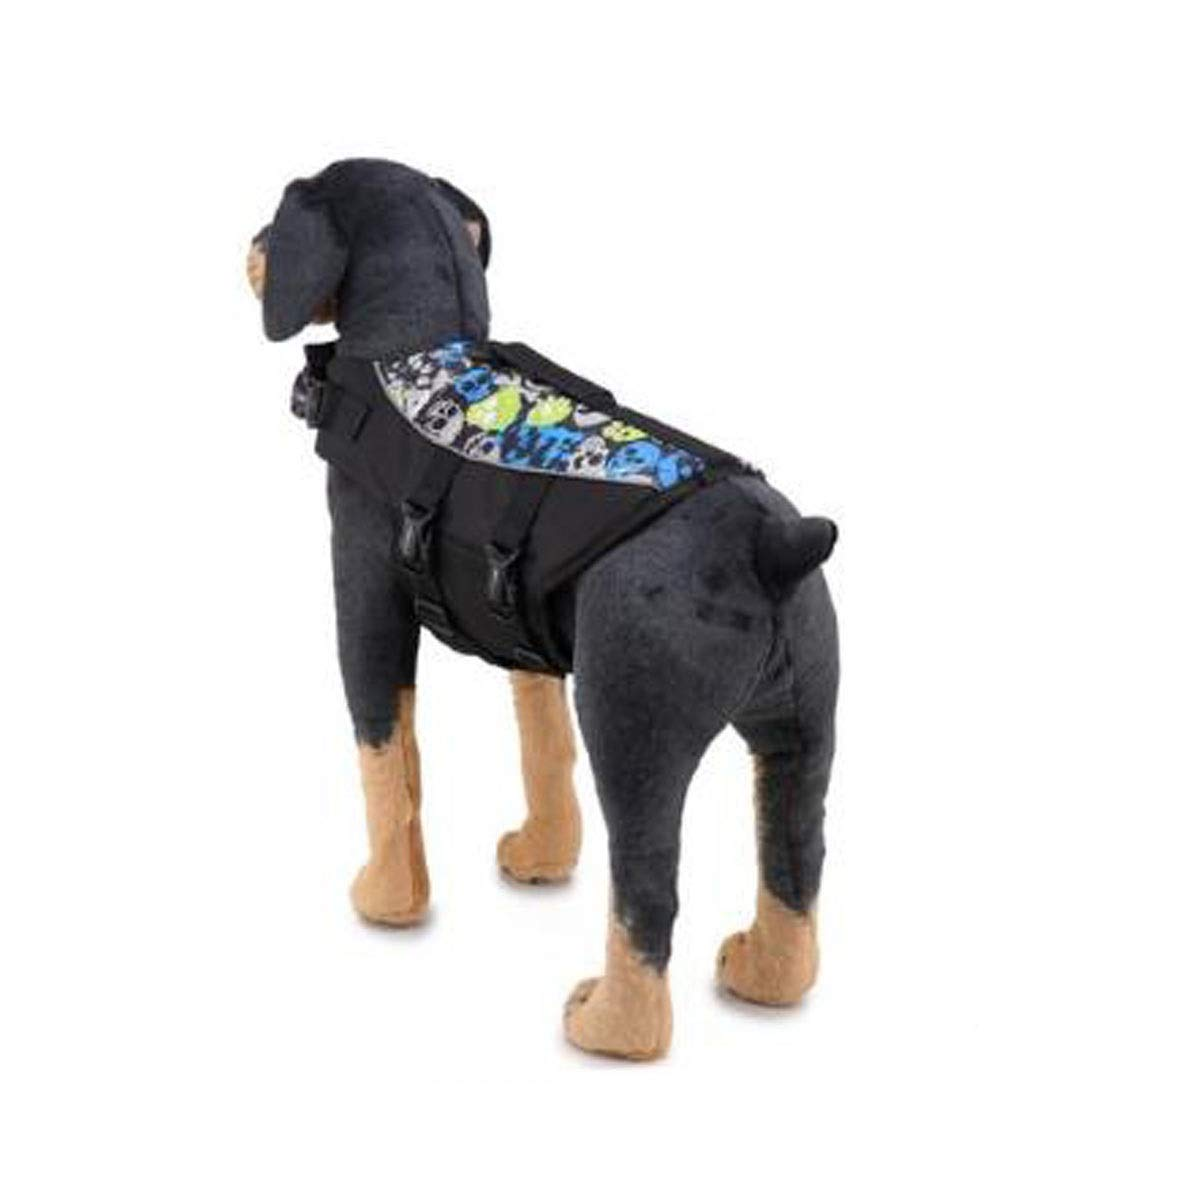 Black L Black L Life Jacket, Dog's Safe and Sturdy Swimming Vest, Oxford Cloth Quality Material, Black and Other Multi-color Optional, Easy to Carry (Size  L, M, S) (color   Black, Size   L)